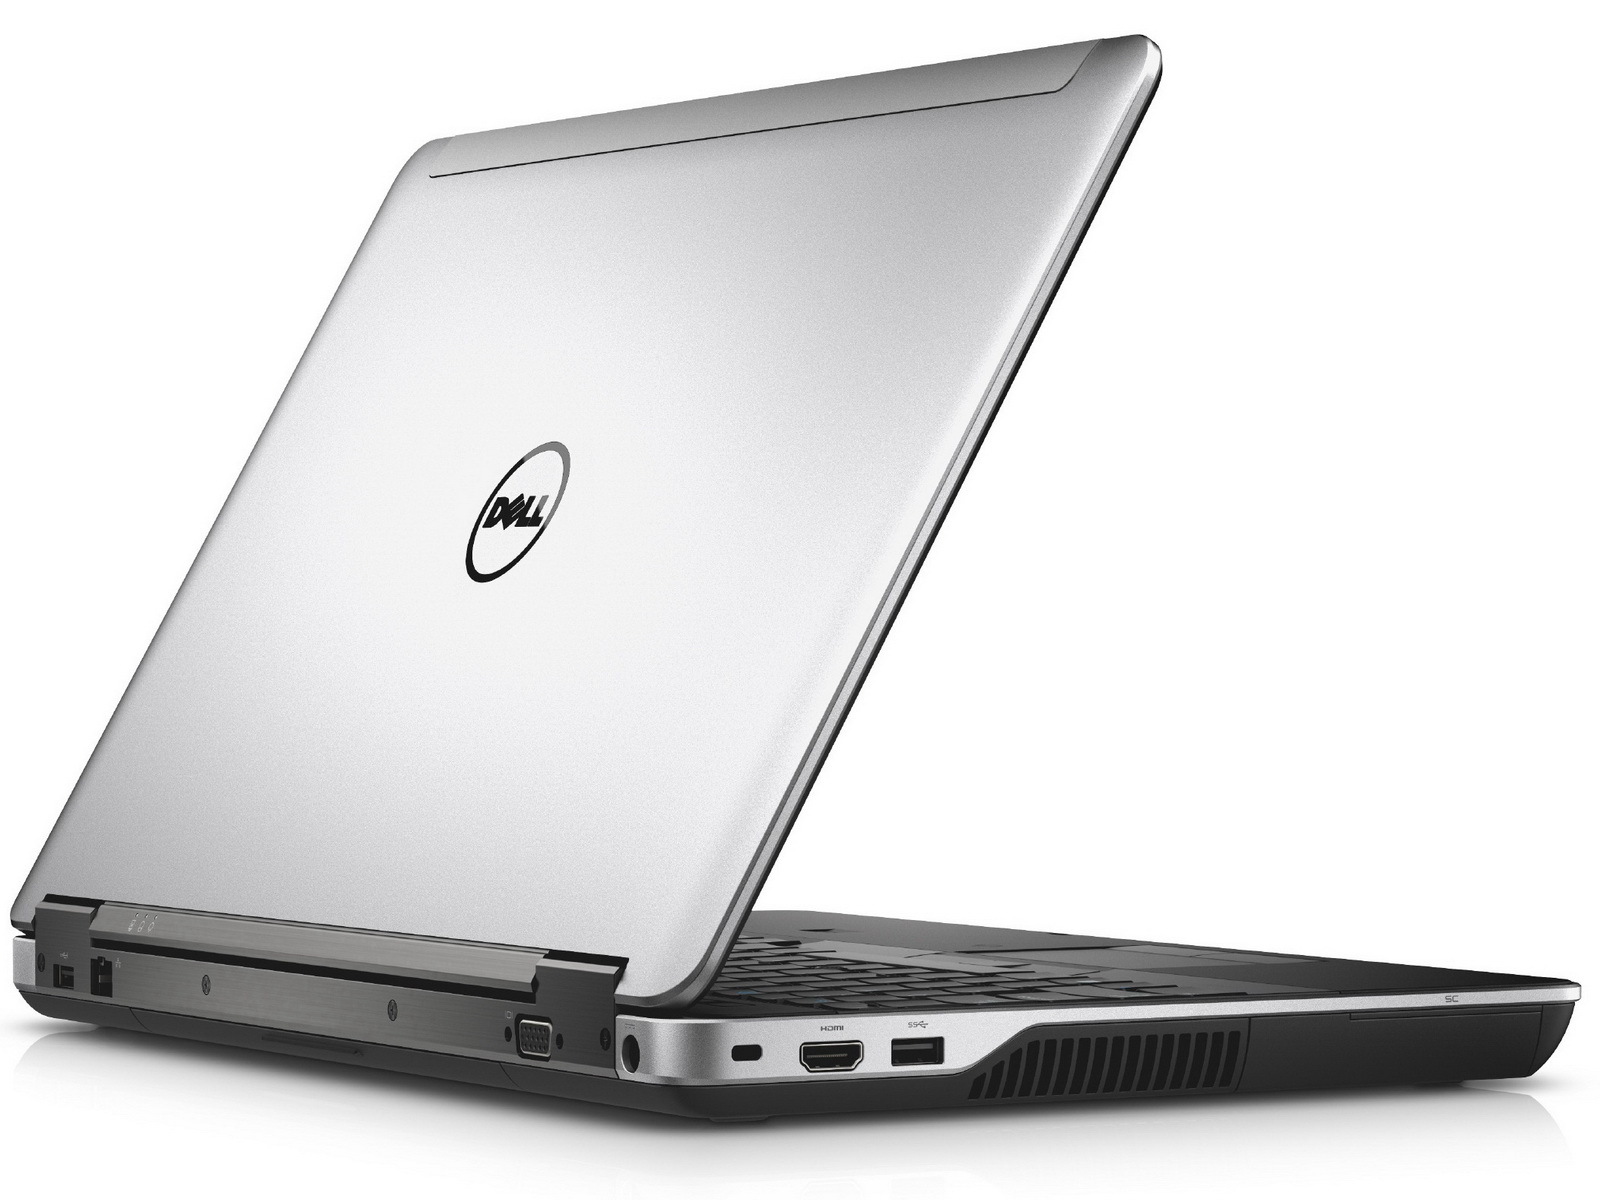 Dell Convertible Ultrabook XPS 12 Mit Haswell Und Business Notebook Latitude E6540 93914 0 on dell xps workstation